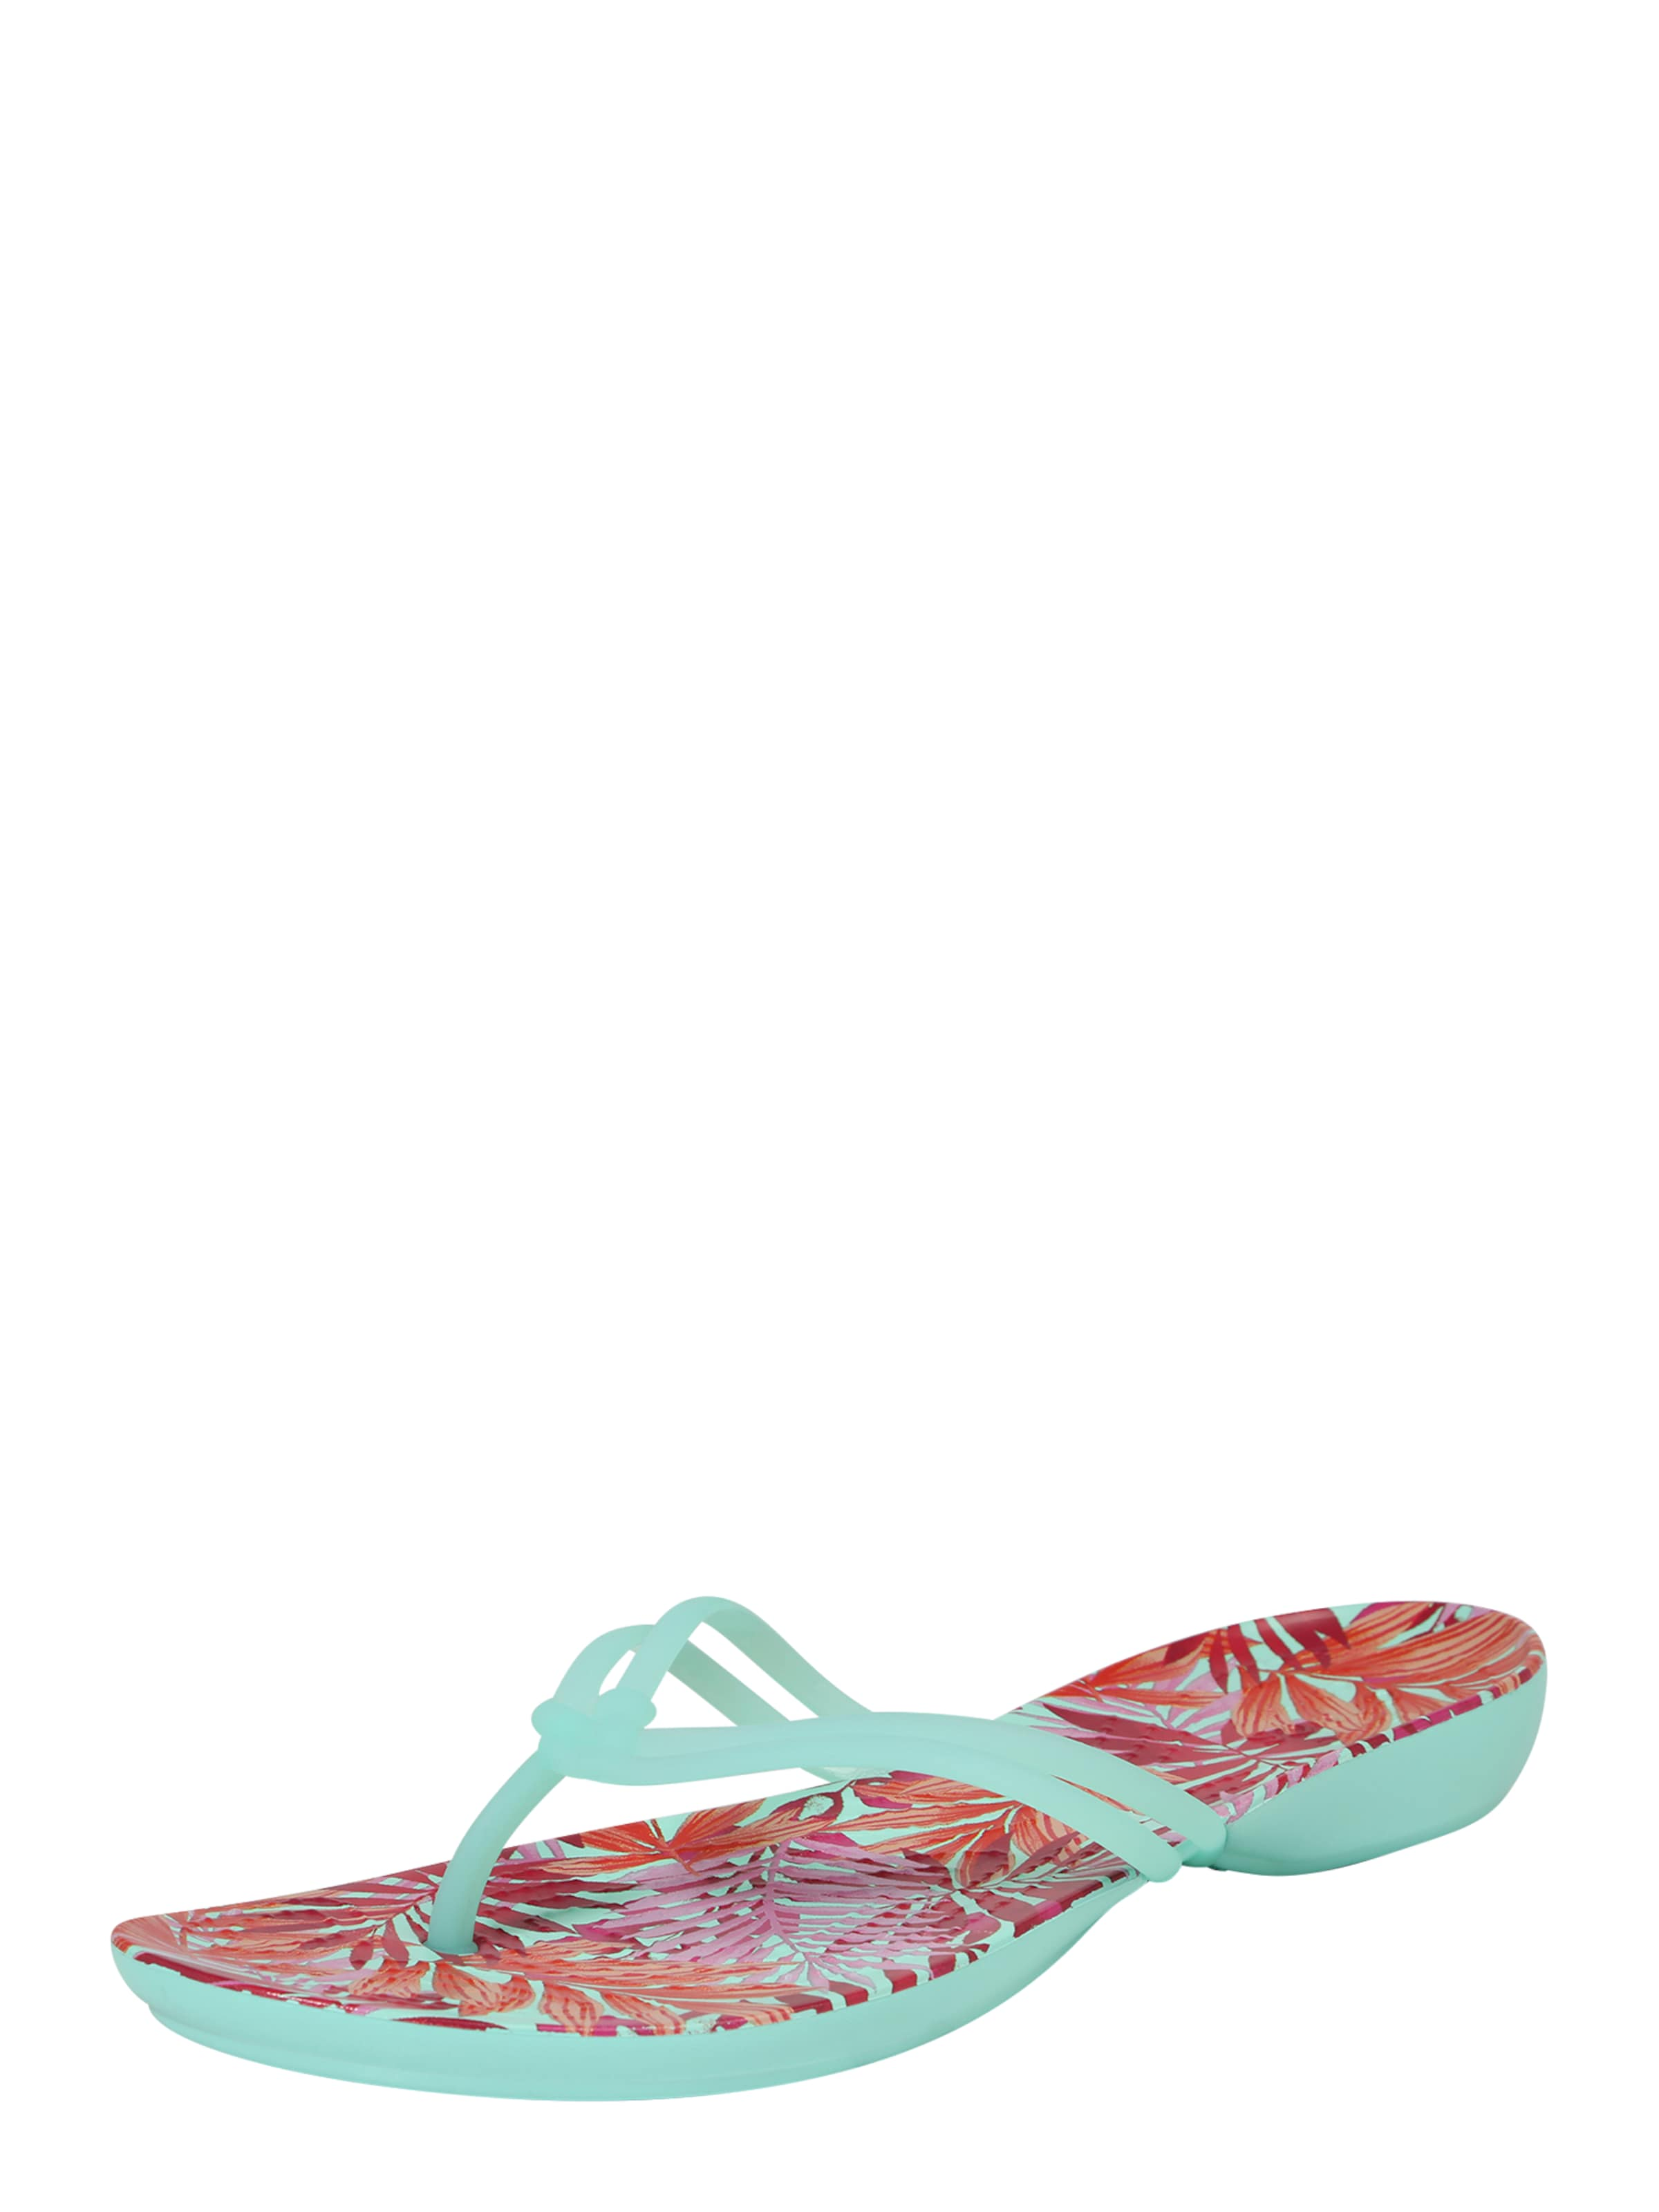 Crocs Graphic | Zehentrennersandale  Isabella Graphic Crocs 7575f3